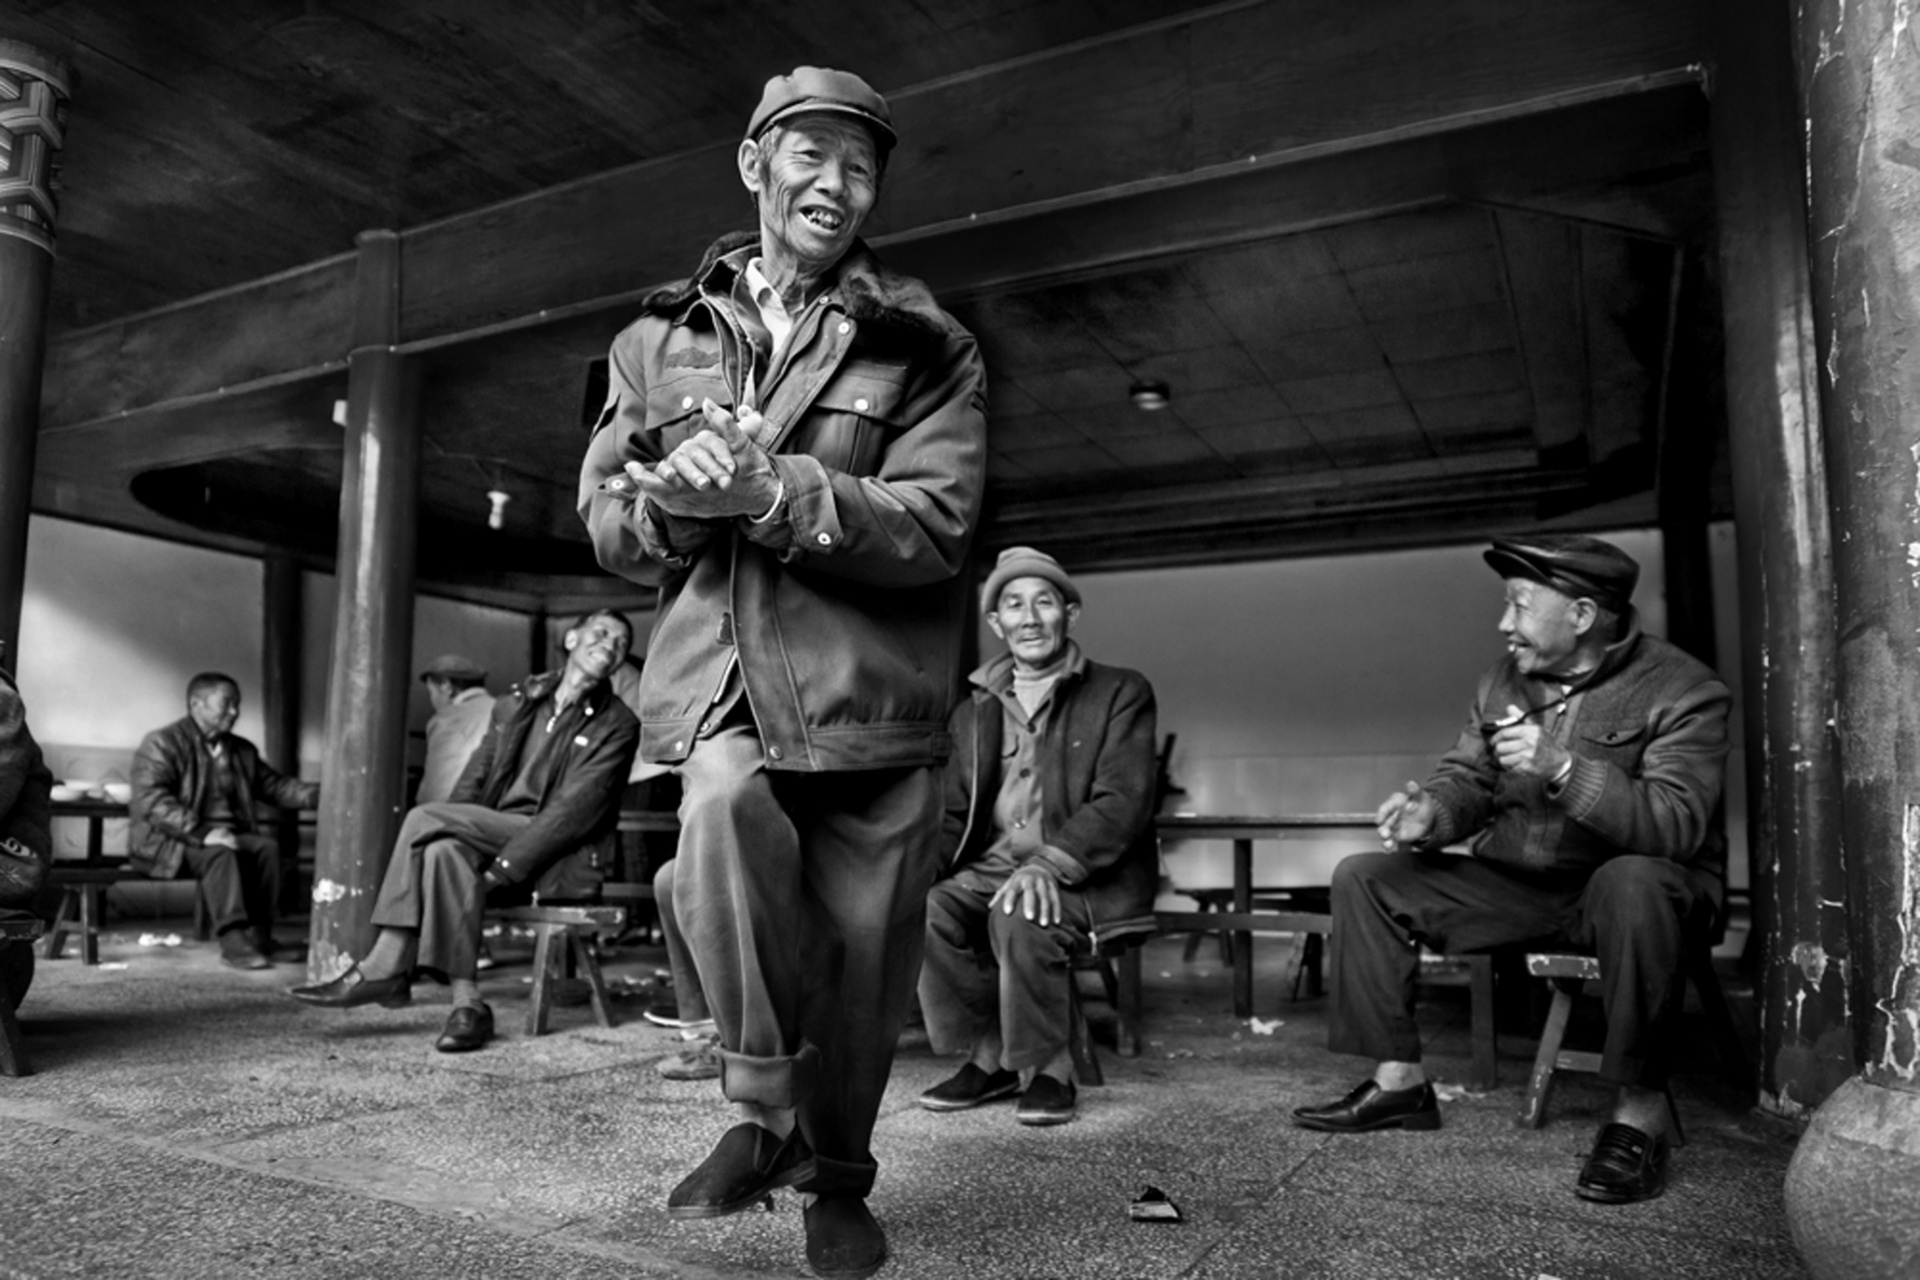 Tribes winner, Nick Ng Yeow Kee, Malaysia Forgotten faces of China - a greying society that is being left out of modernisation, rural Yunnan, China Photograph: Nick Ng Yeow Kee/TPOTY